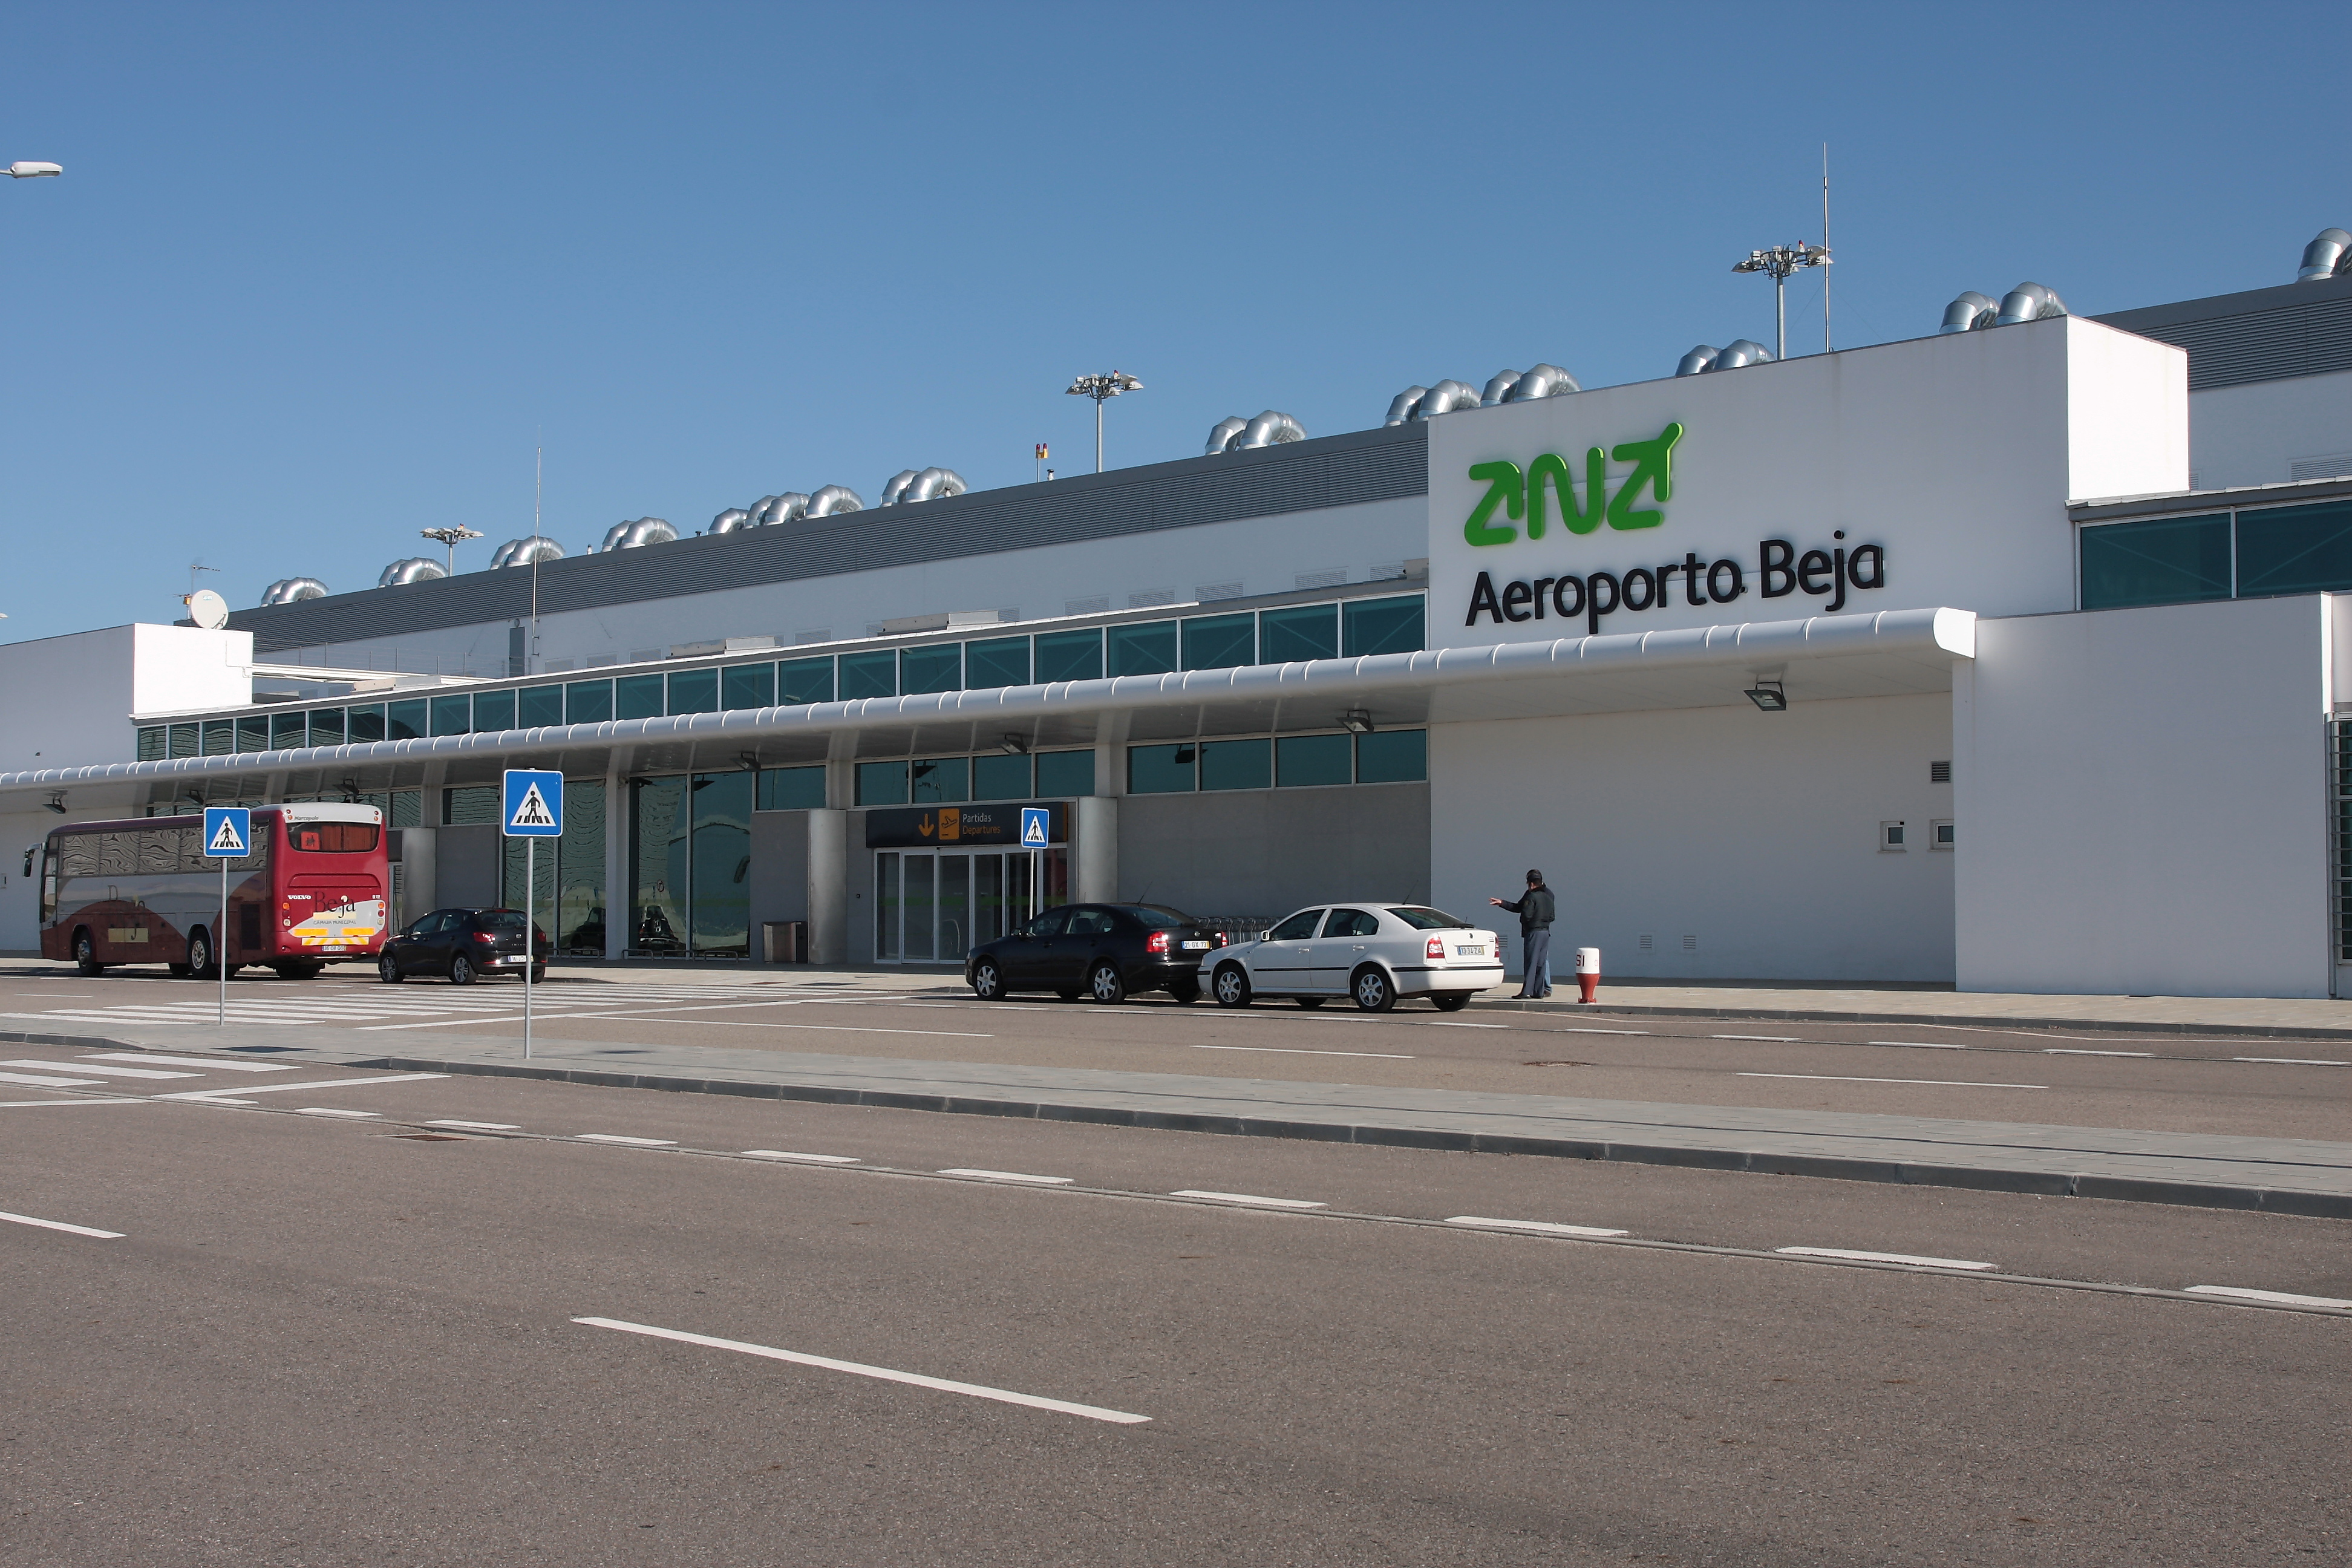 Beja Airport: A Runway To Nowhere?